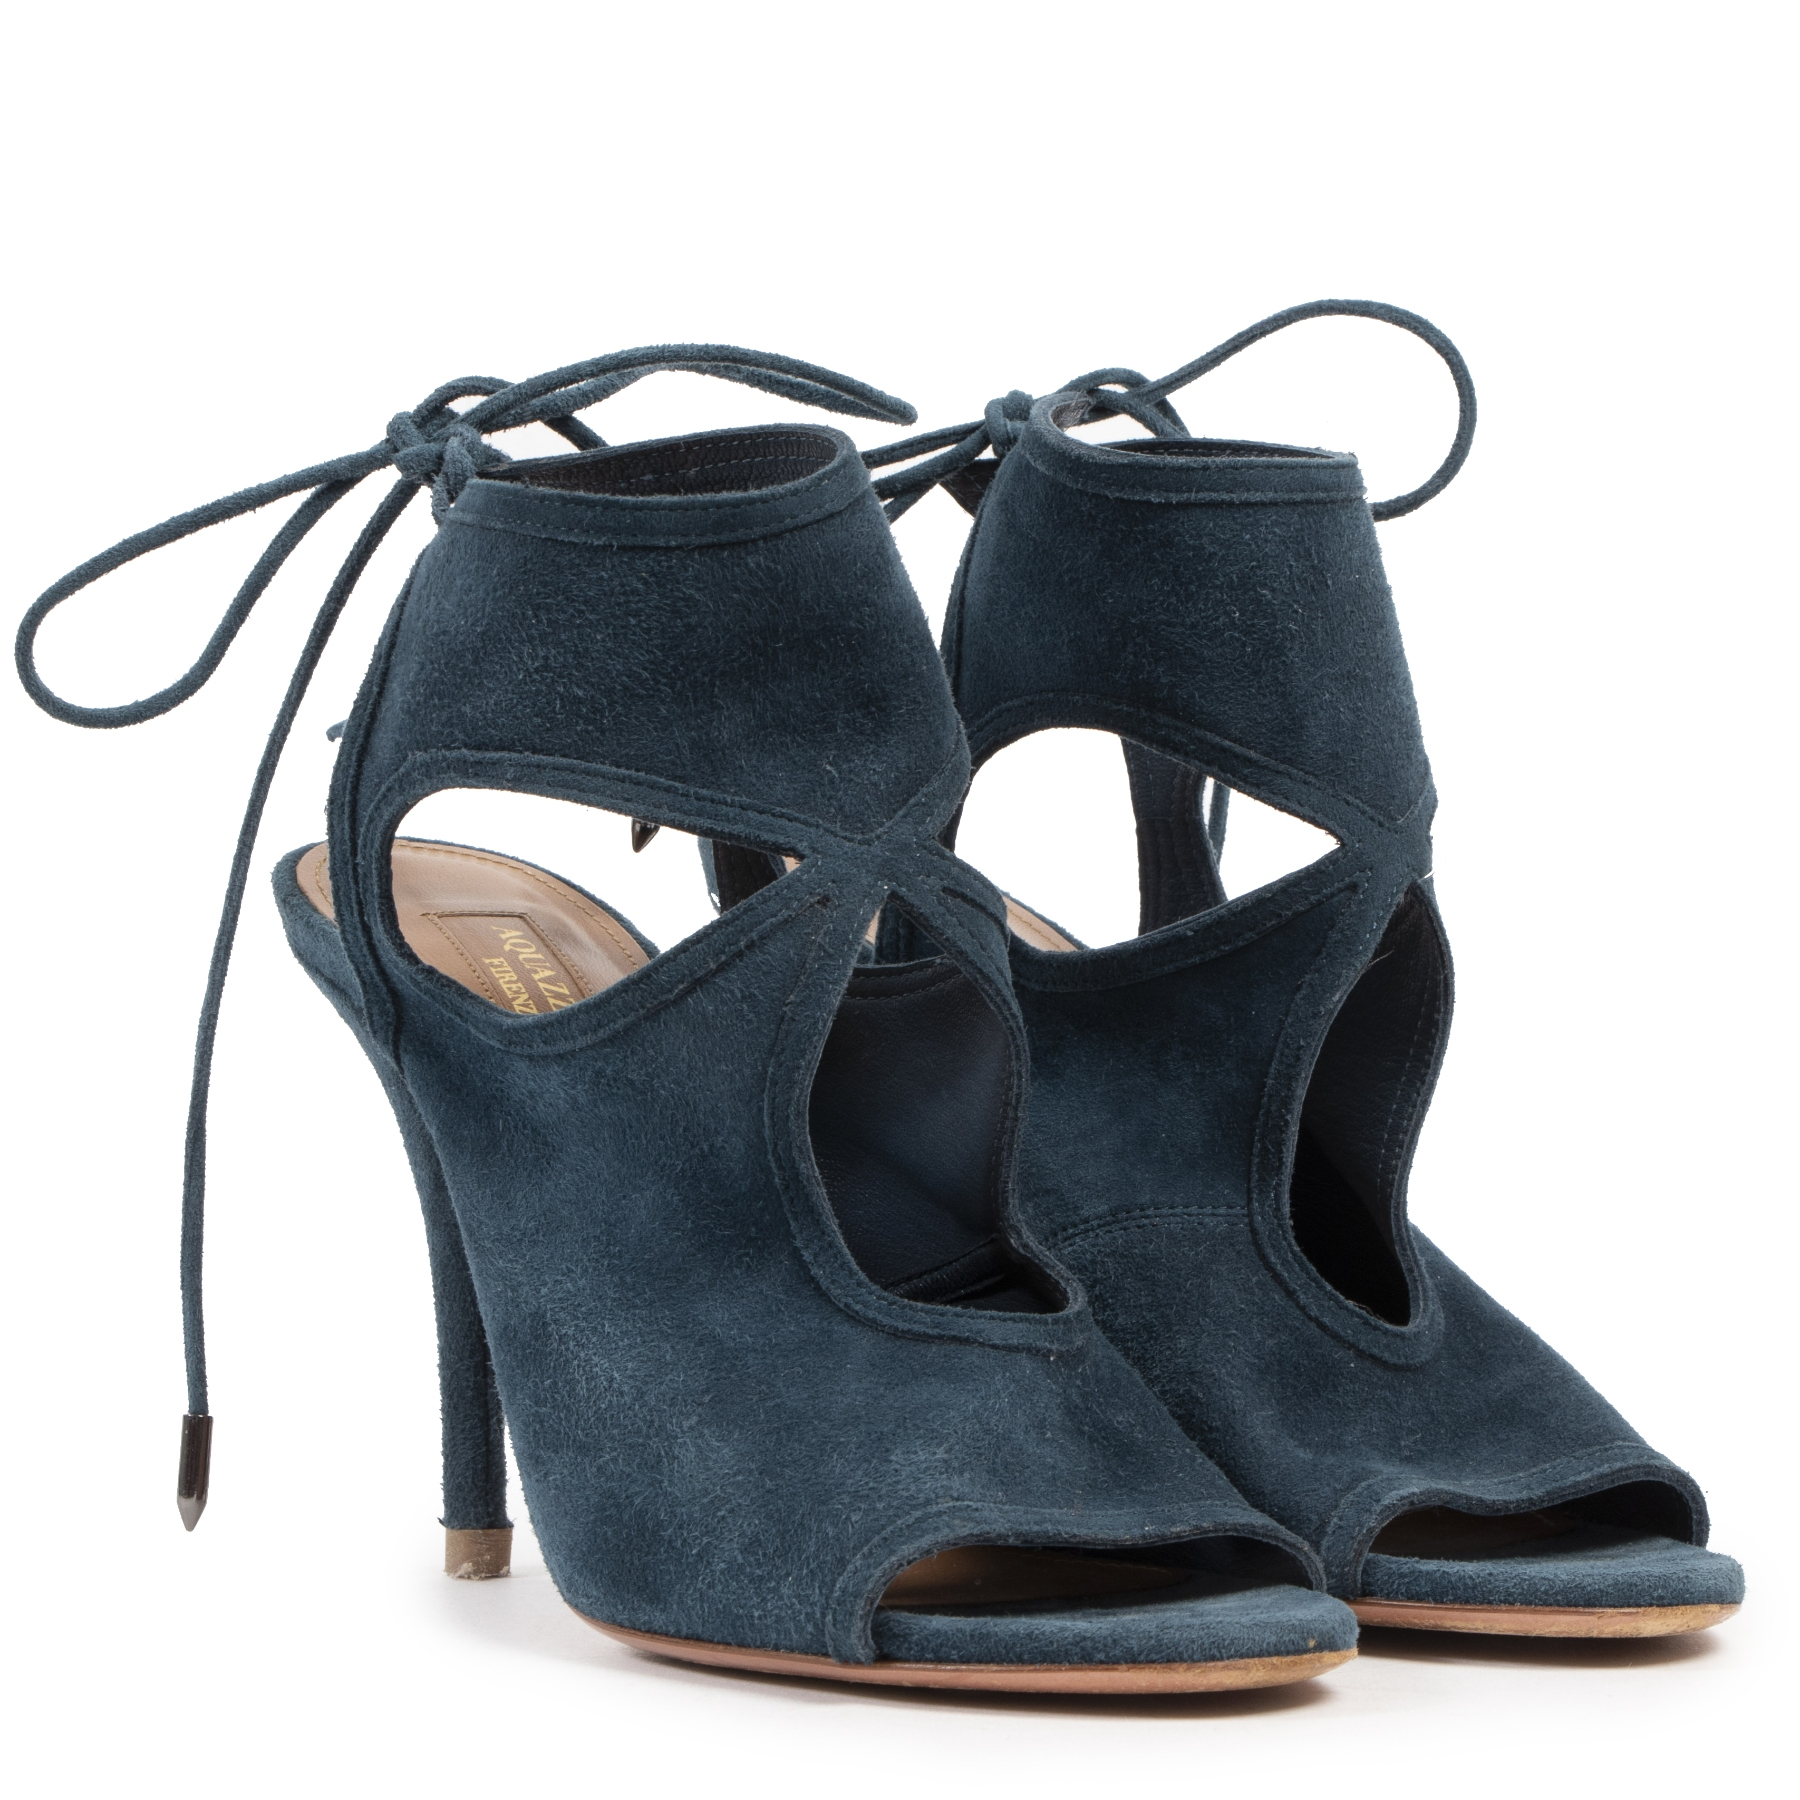 Authentic Secondhand Aquazzura Blue Sexy Thing Suede Heels - Size 38 designer shoes accessories designer high end brands fashion luxury vintage webshop safe secure online shopping